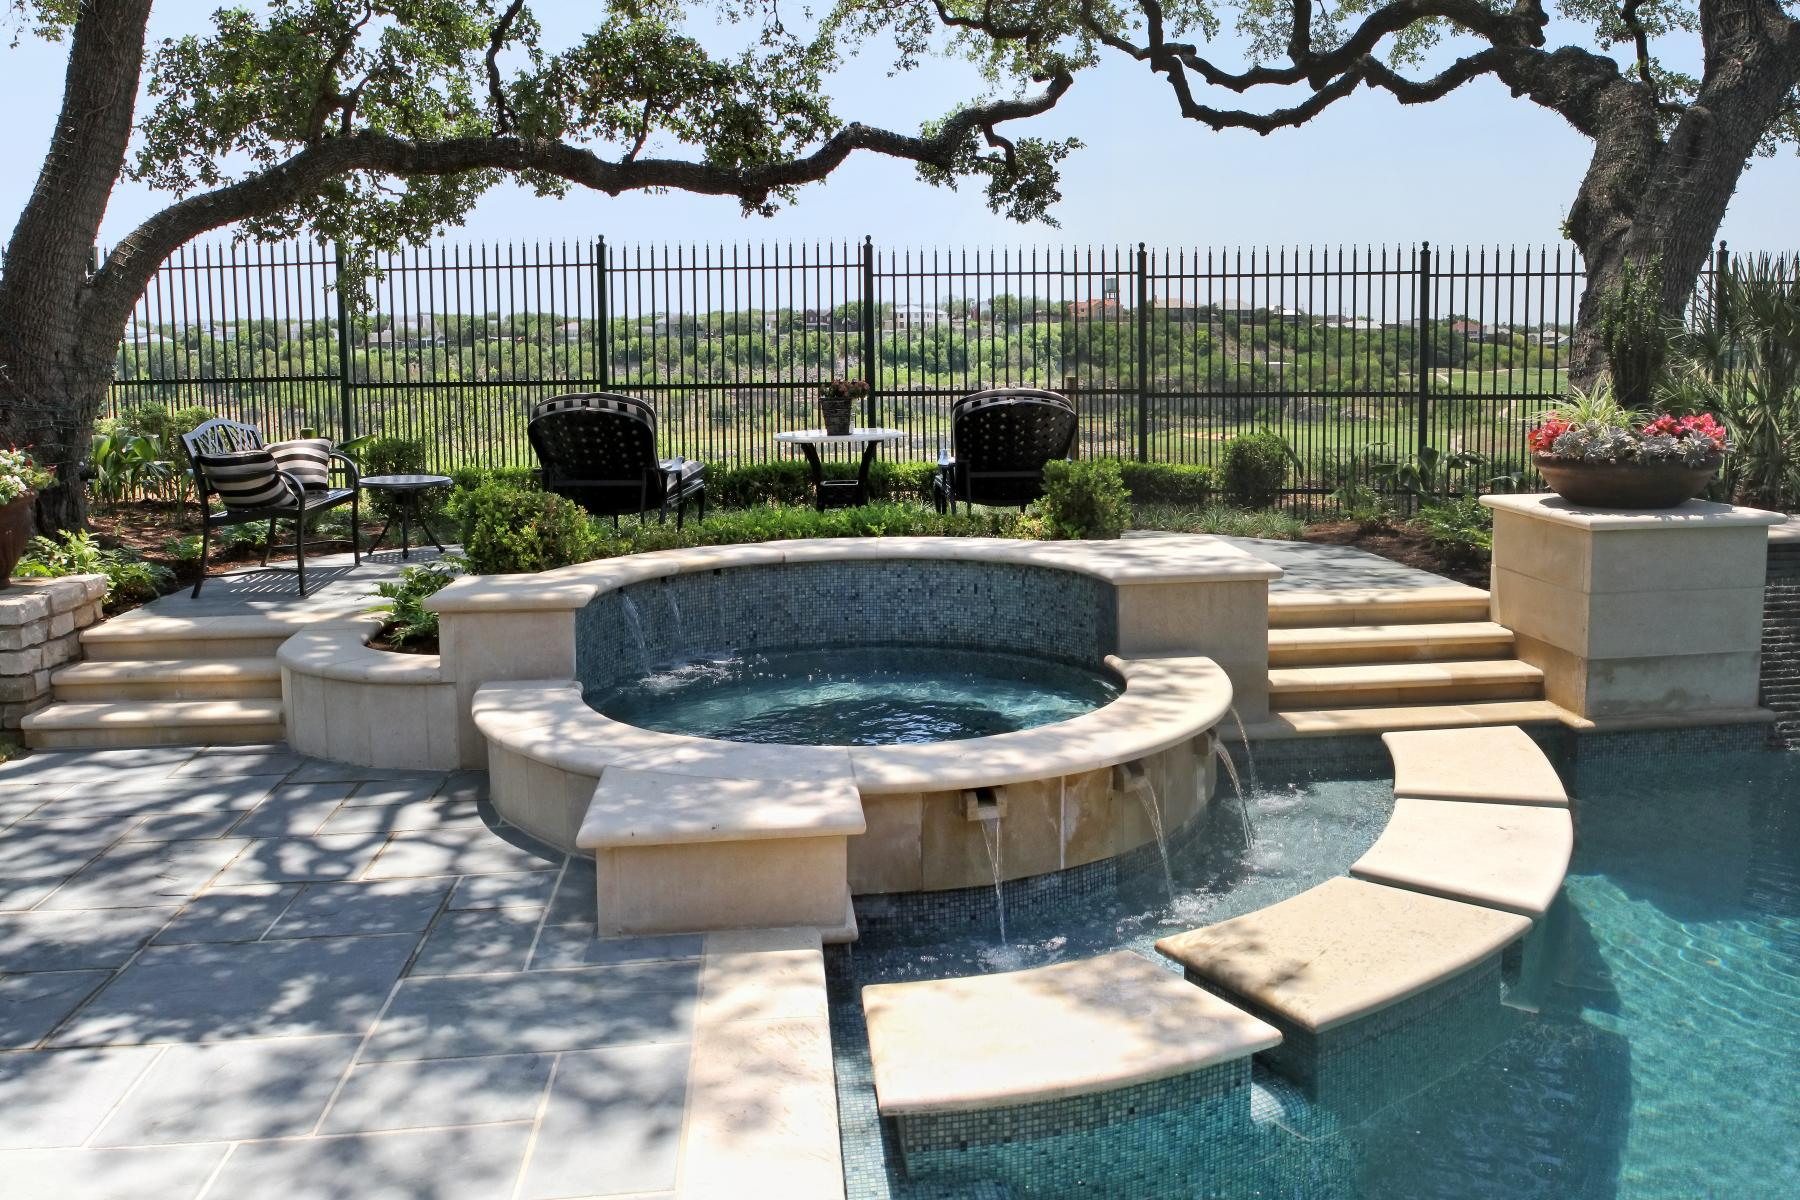 Can I Build A Pool If My Backyard Is All Rock?